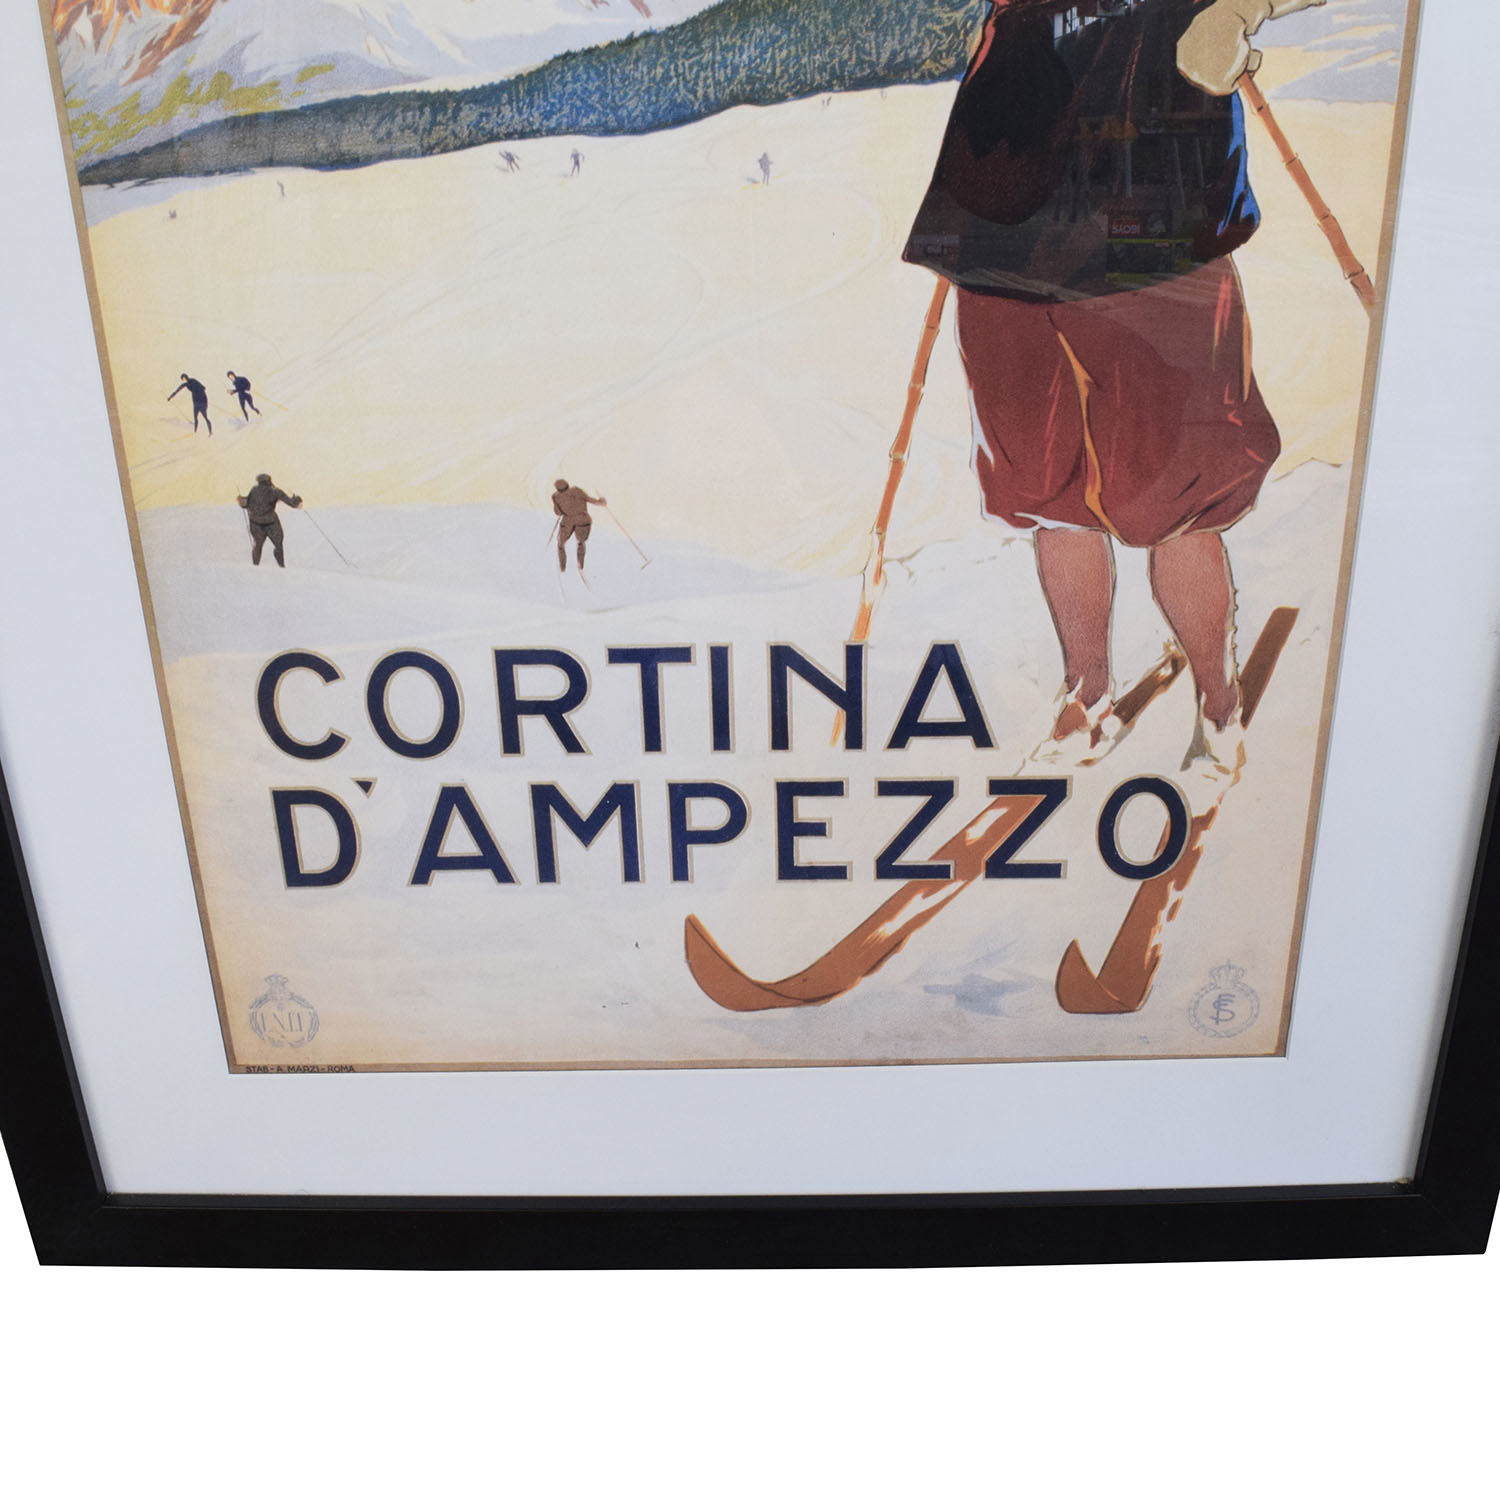 Getty Cortina DAmpezzo Framed Art Print nj